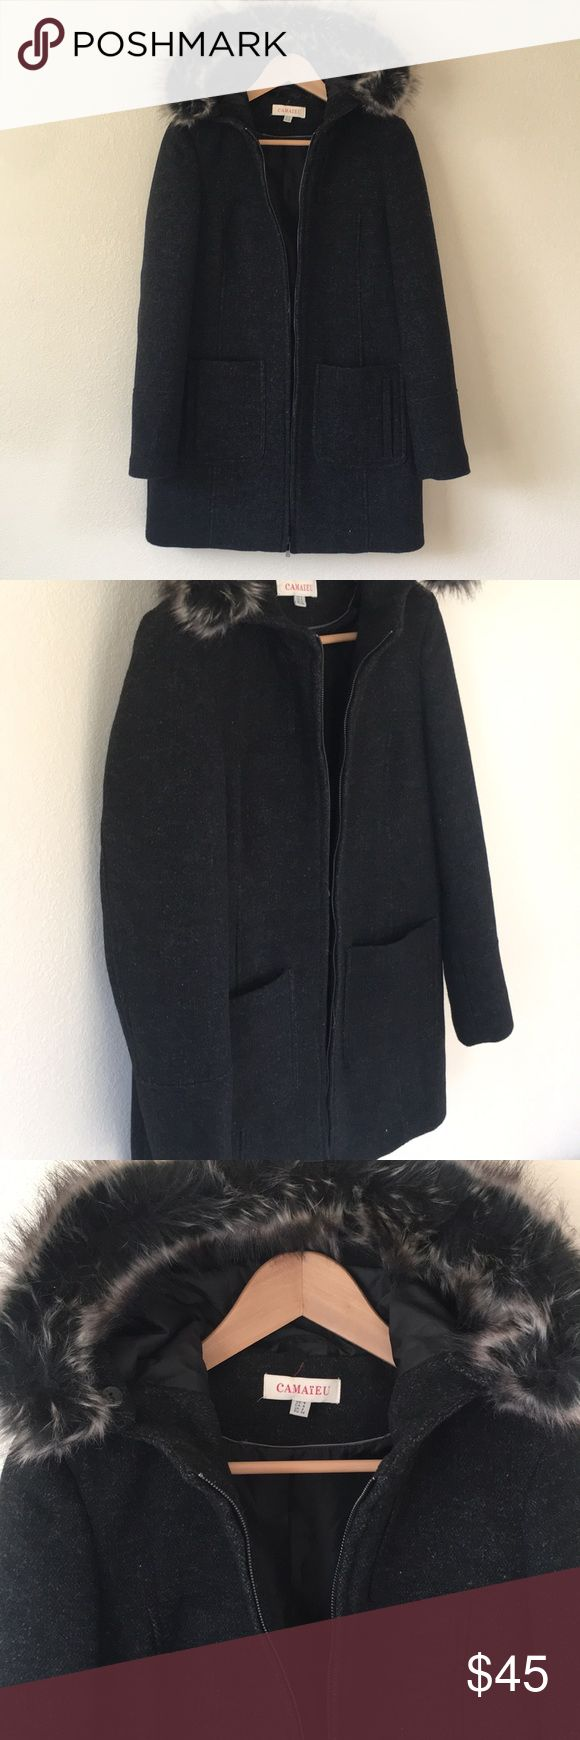 Dress Coat Fully lined, Black with a mix of some dark heather grays but mostly black. Has hood, with detachable fur detail. Front pockets are both doubled. Zipper closure. Back expands with a closed slit. Never worn. Can take measurements if needed.. happy to offers Camaïeu Jackets & Coats